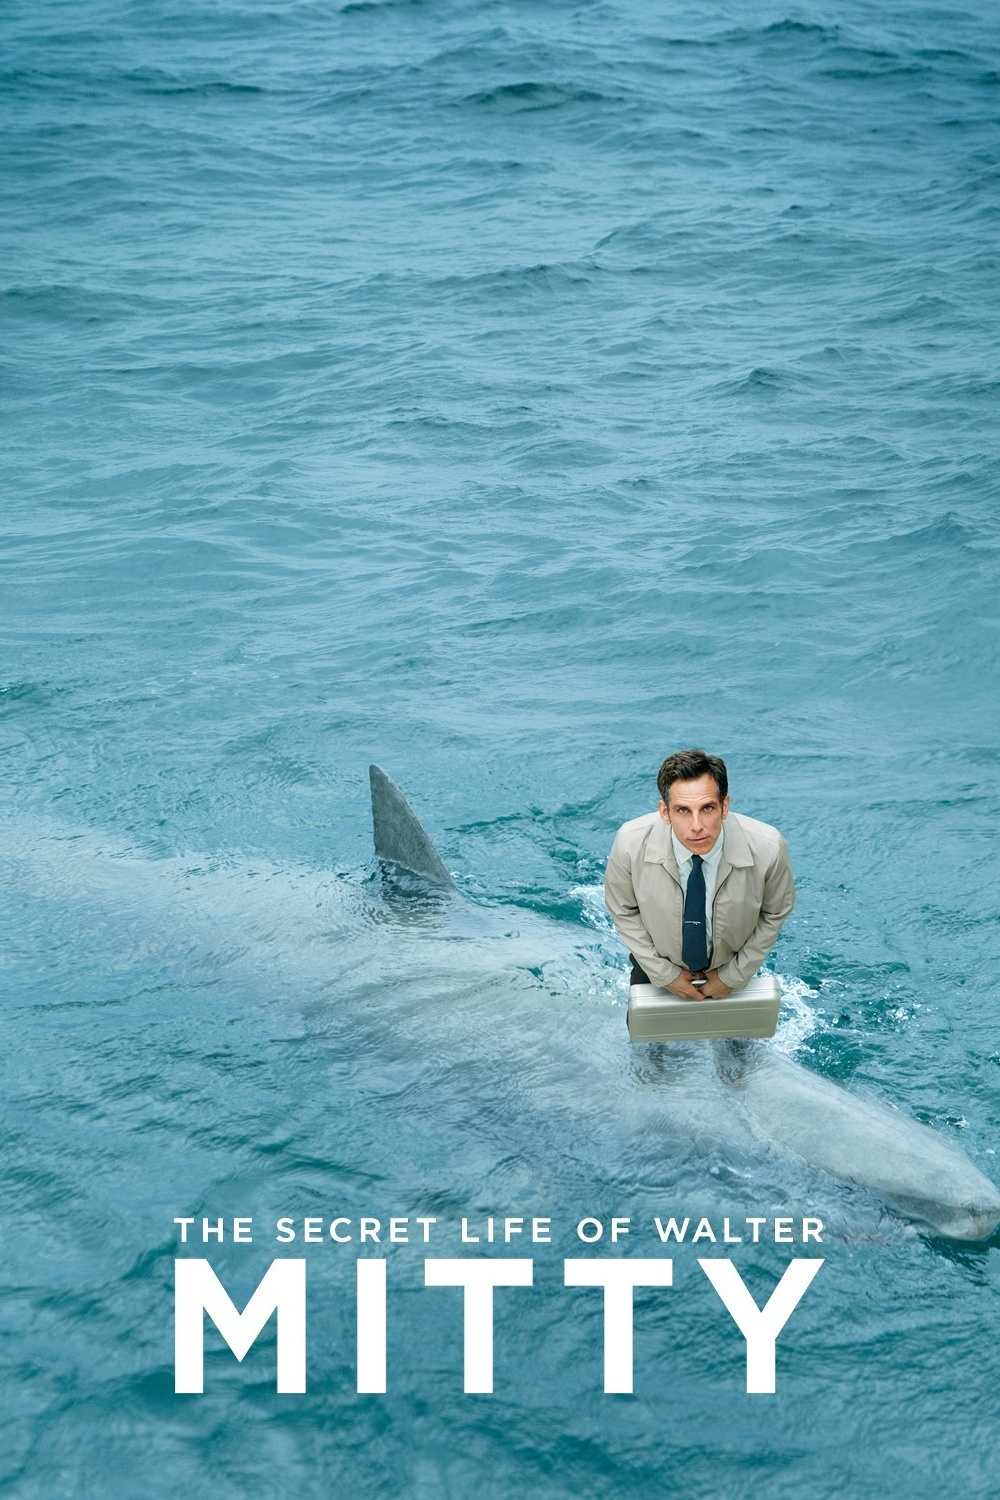 the imagined life of walter mitty The secret life of walter mitty is a short, comedic story by james thurber detailing the imagined adventures of a hapless, quiet and unimposing man downtrodden upon by his wife.